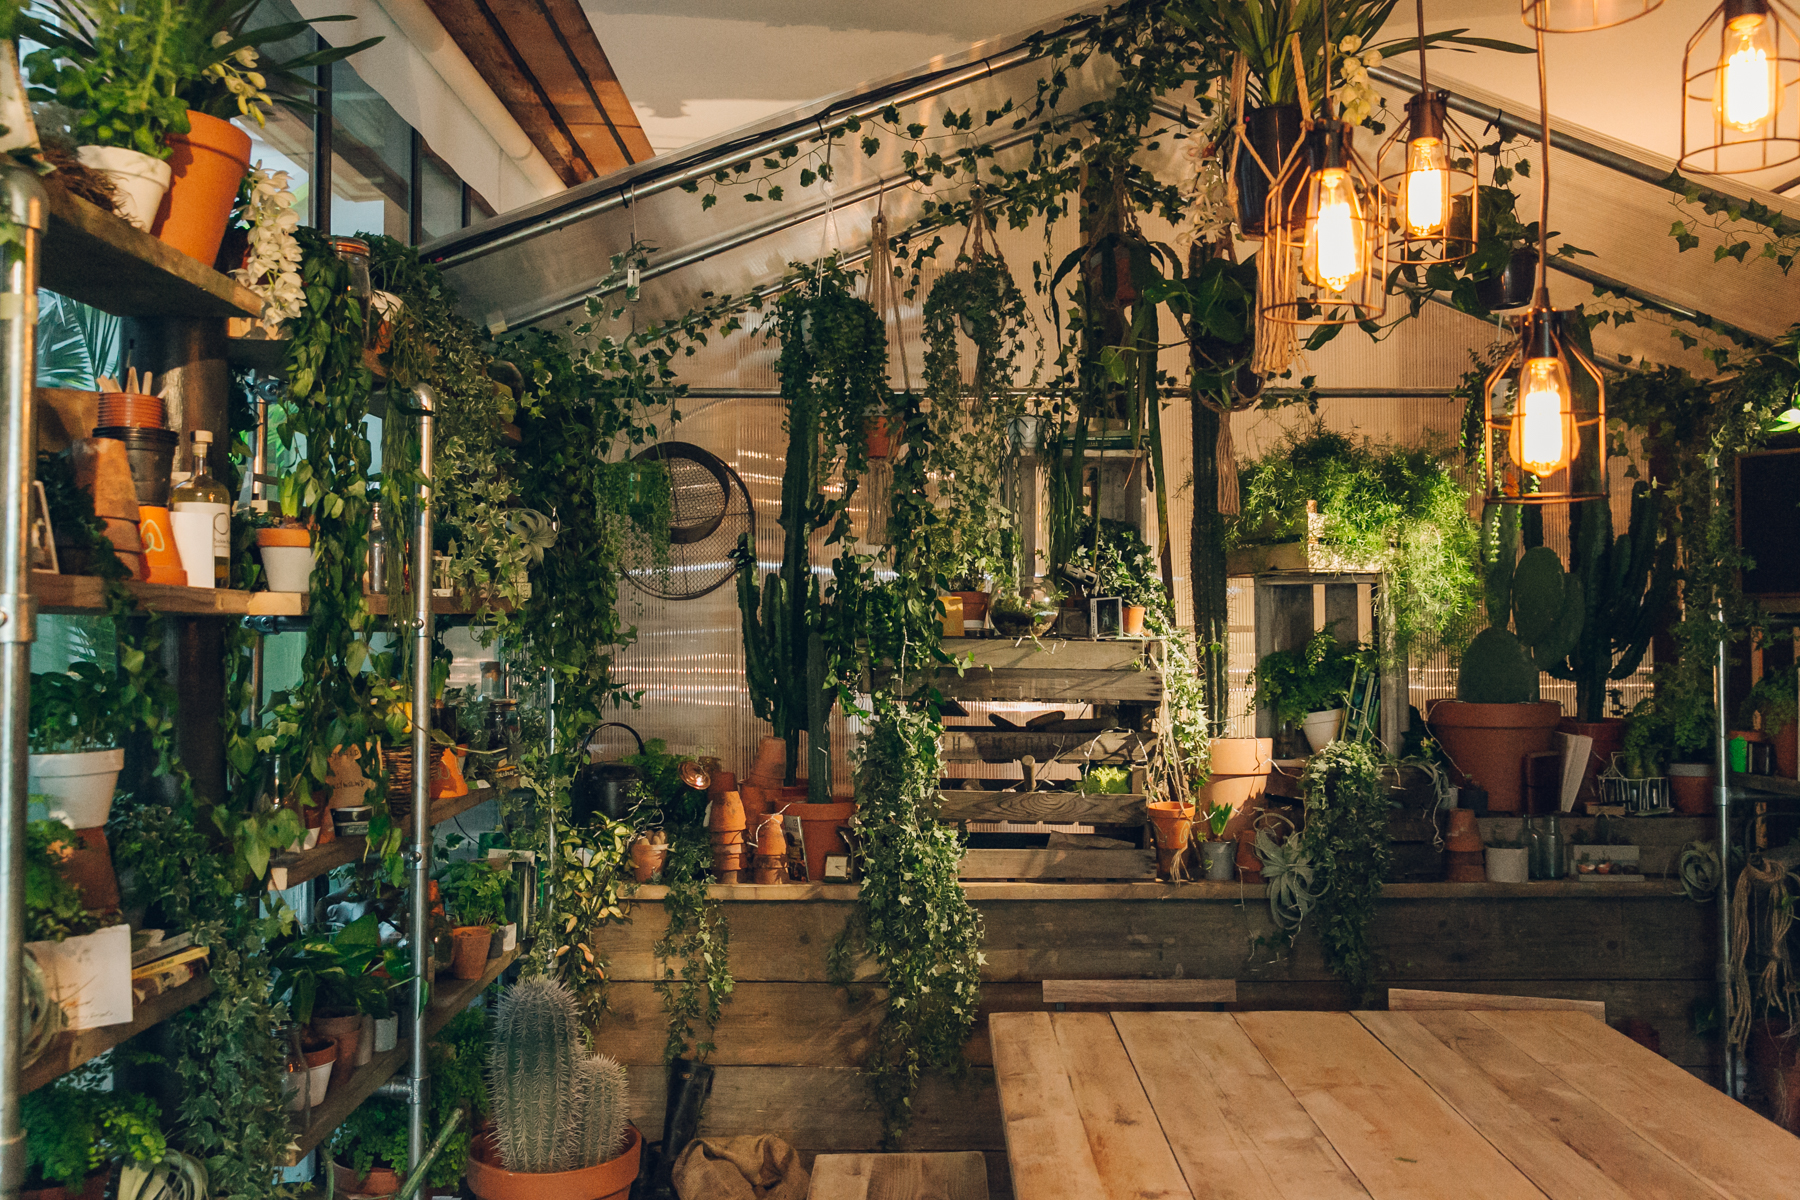 The indoor forest in the 'Outside In' house created by Pantone and Airbnb.